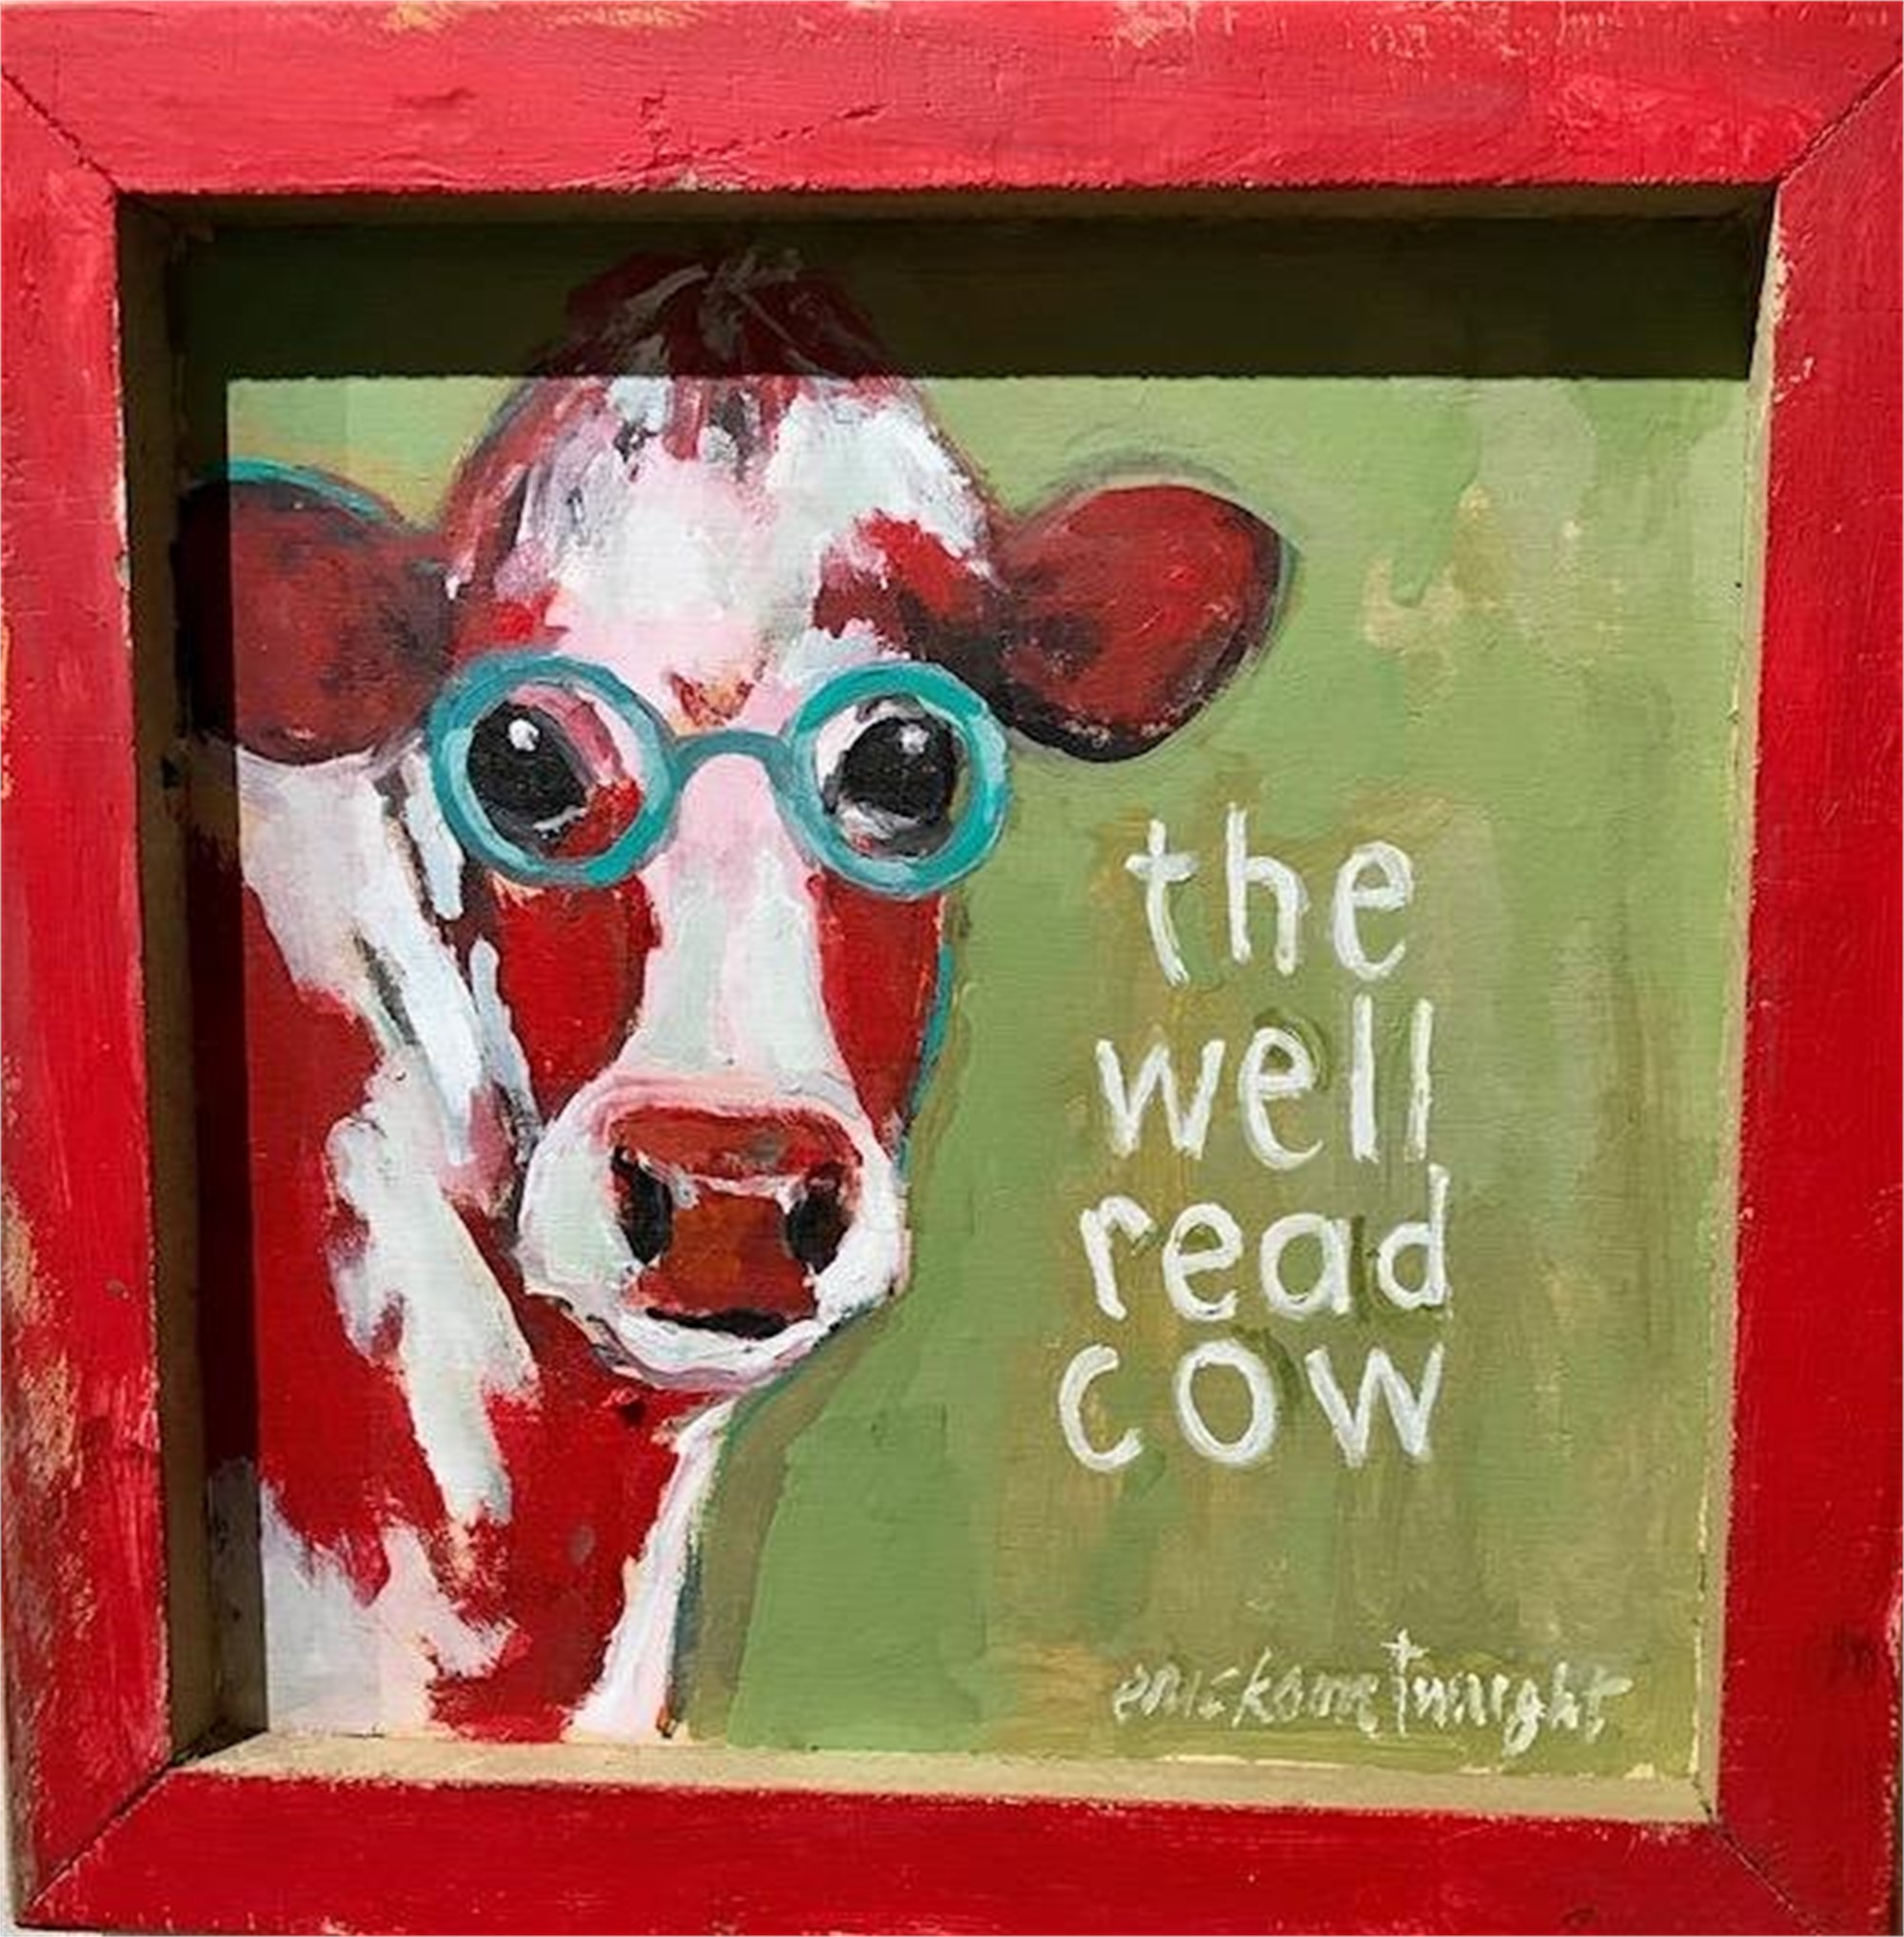 Well read cow by Sandra Erickson Wright